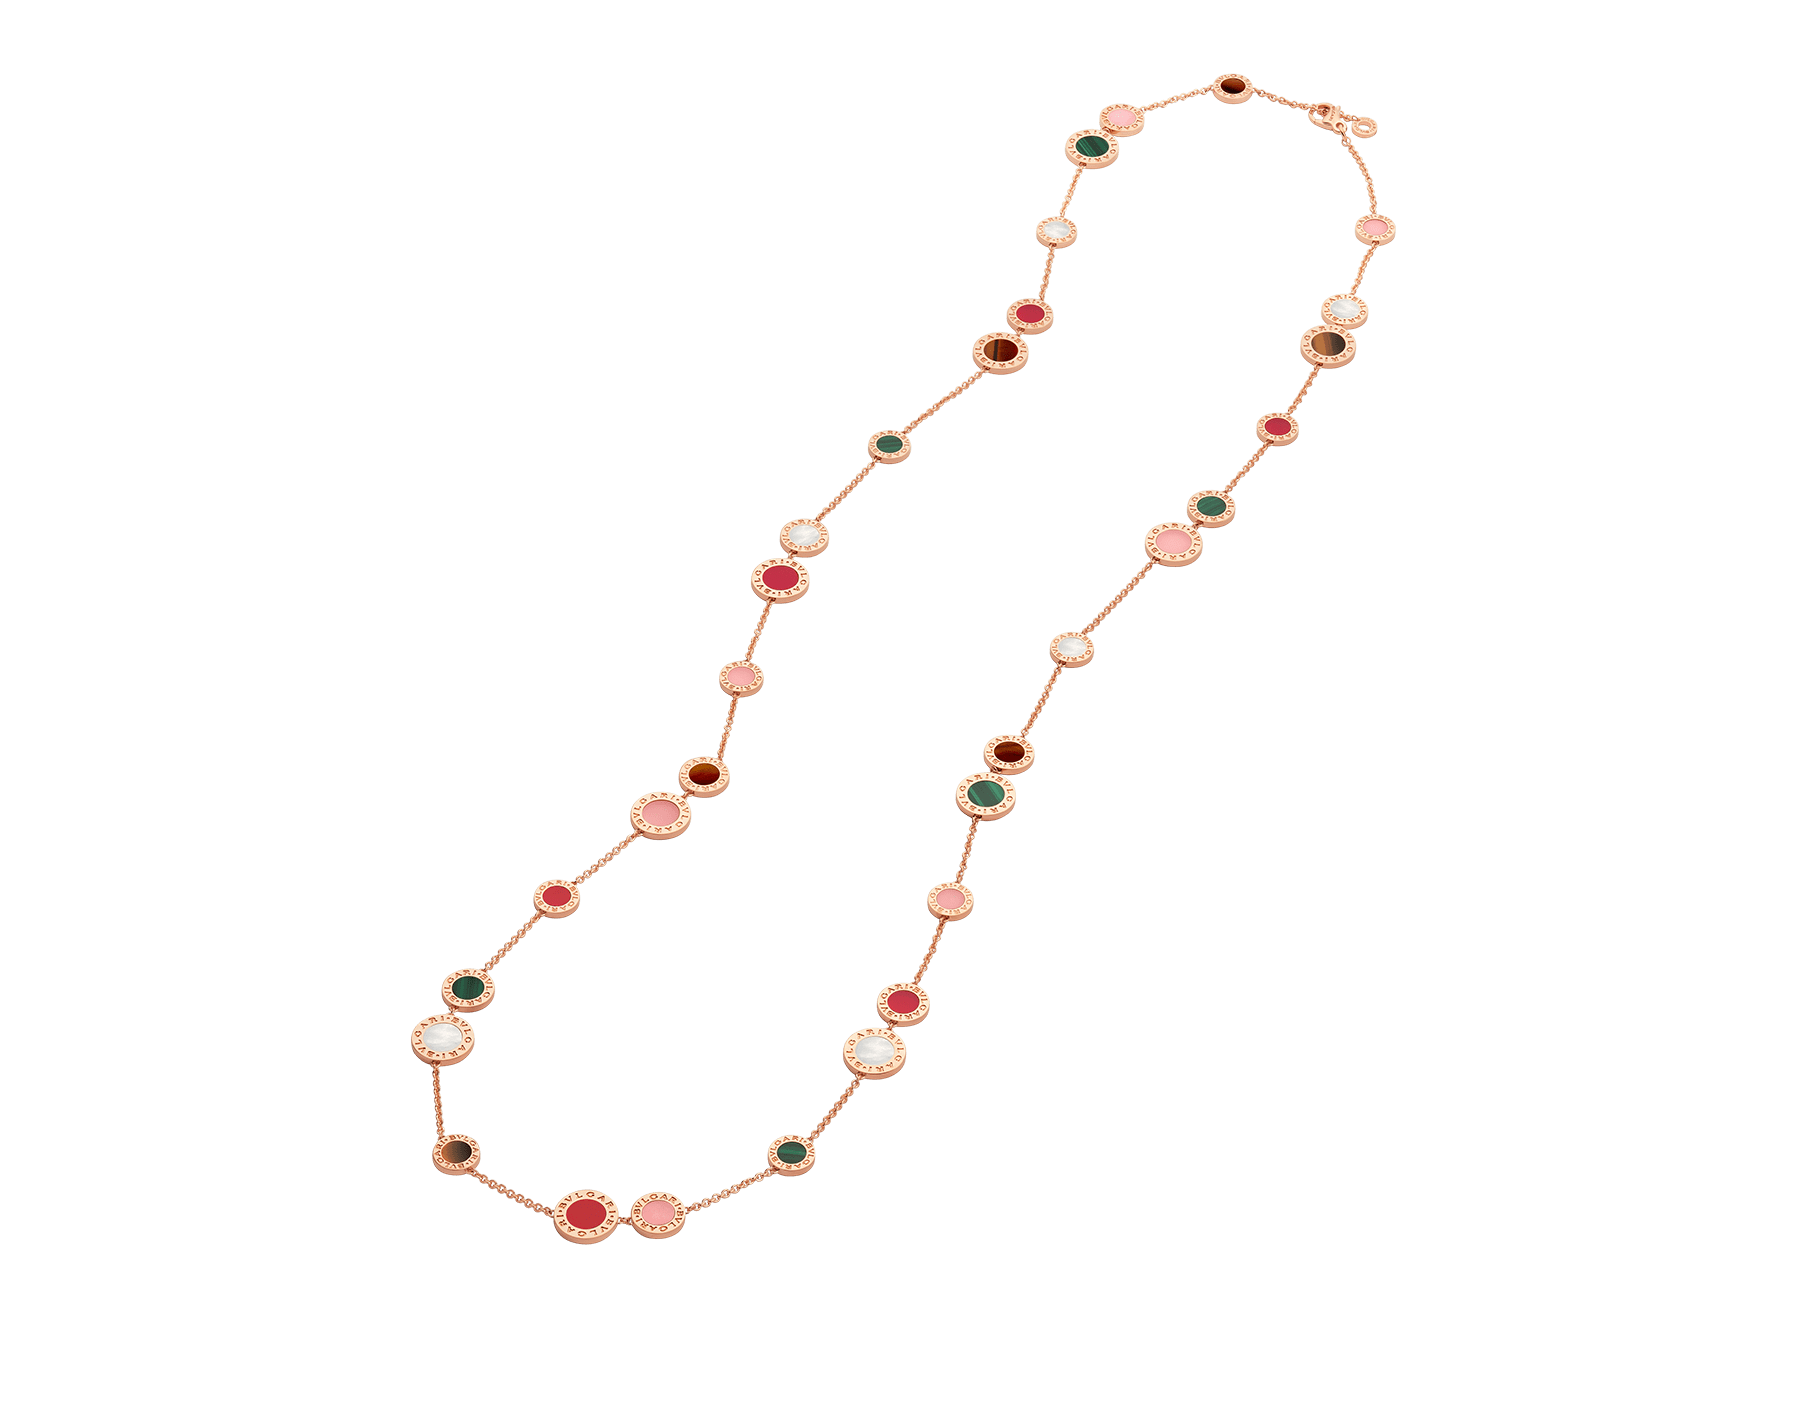 BVLGARI BVLGARI 18 kt rose gold sautoir set with mother-of-pearl, pink opal, tiger's eye, malachite and carnelian elements 356225 image 2